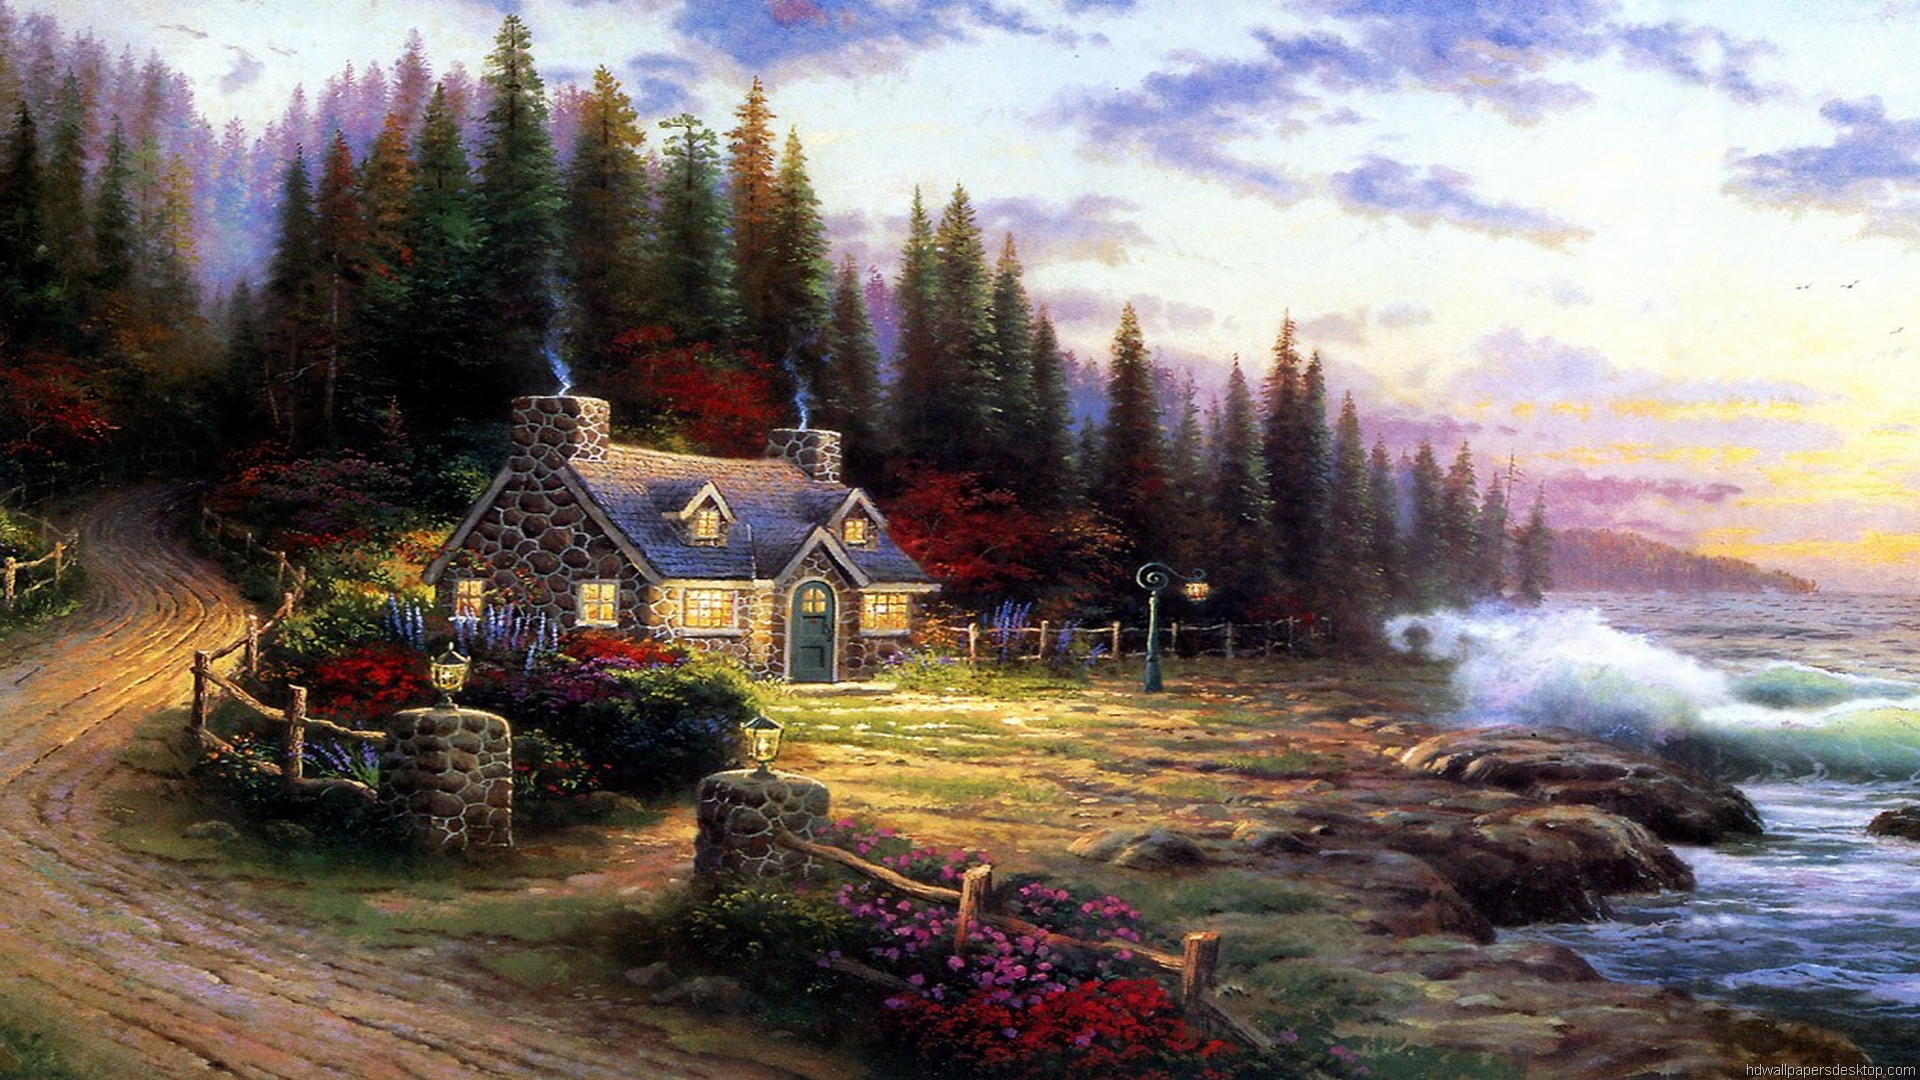 thomas kinkade wallpaper 1920x1080 - photo #4